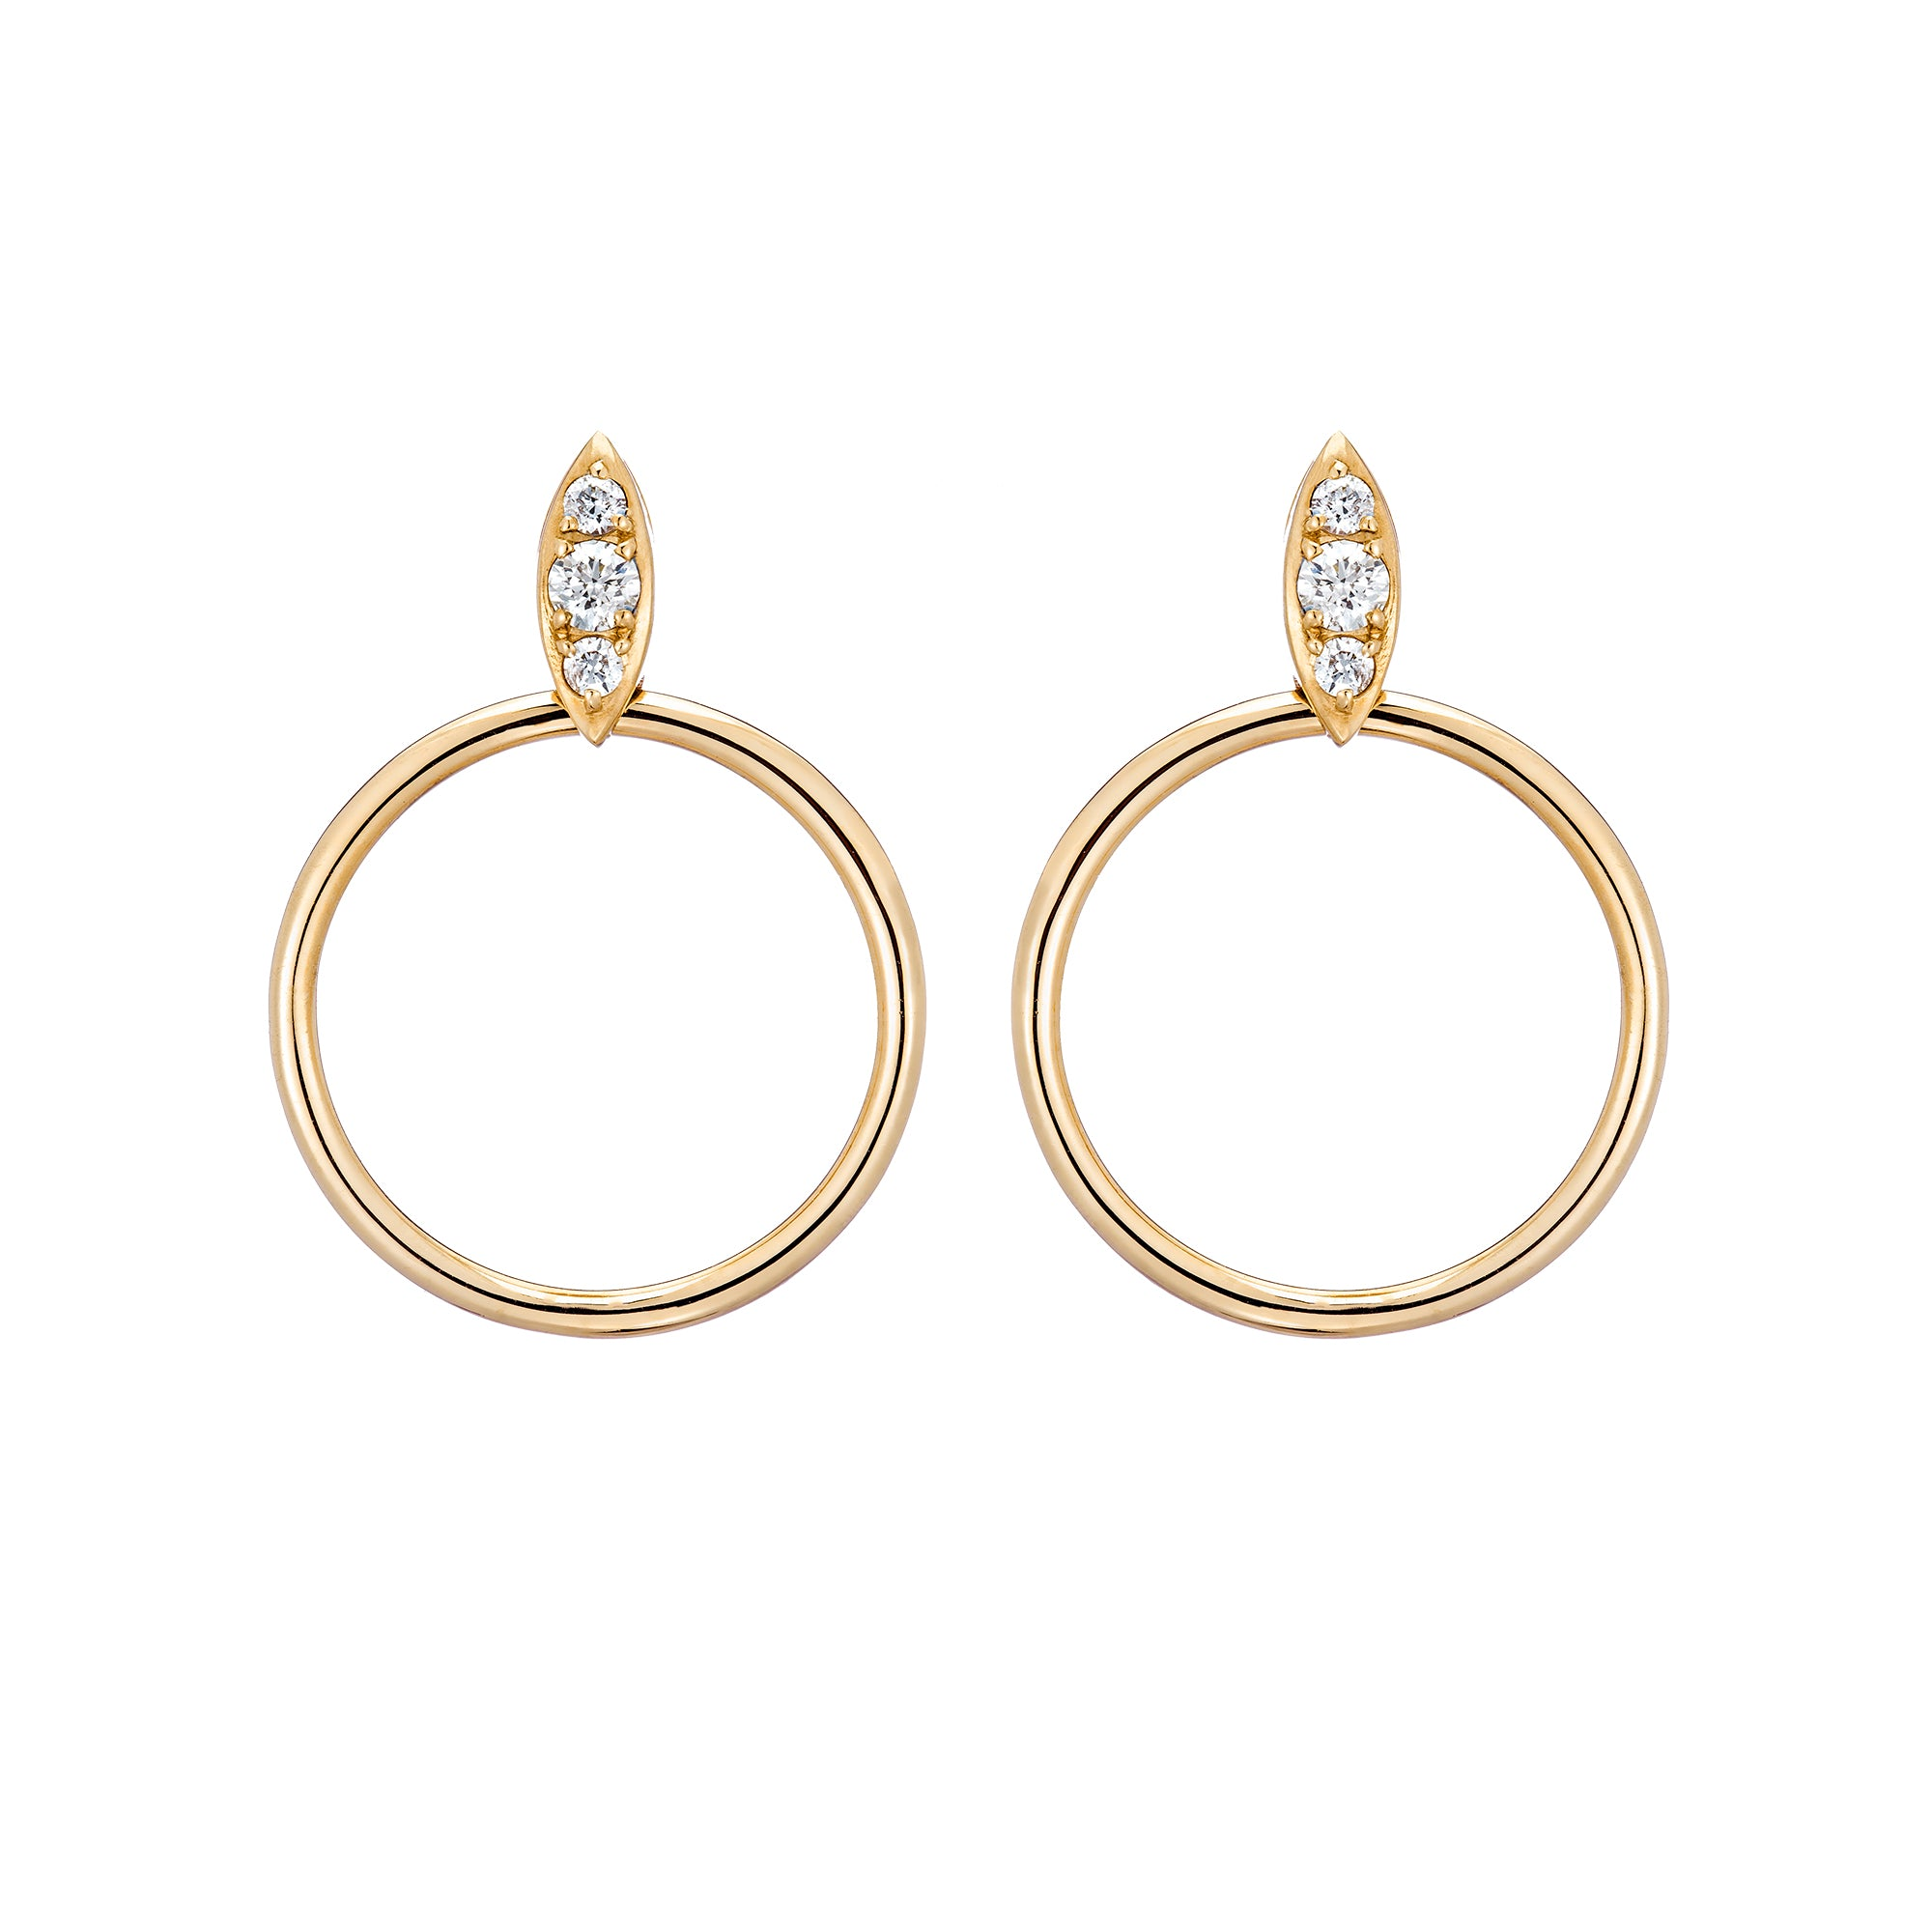 Gold & White Diamond Lucienne Hoops by Carbon & Hyde for Broken English Jewelry